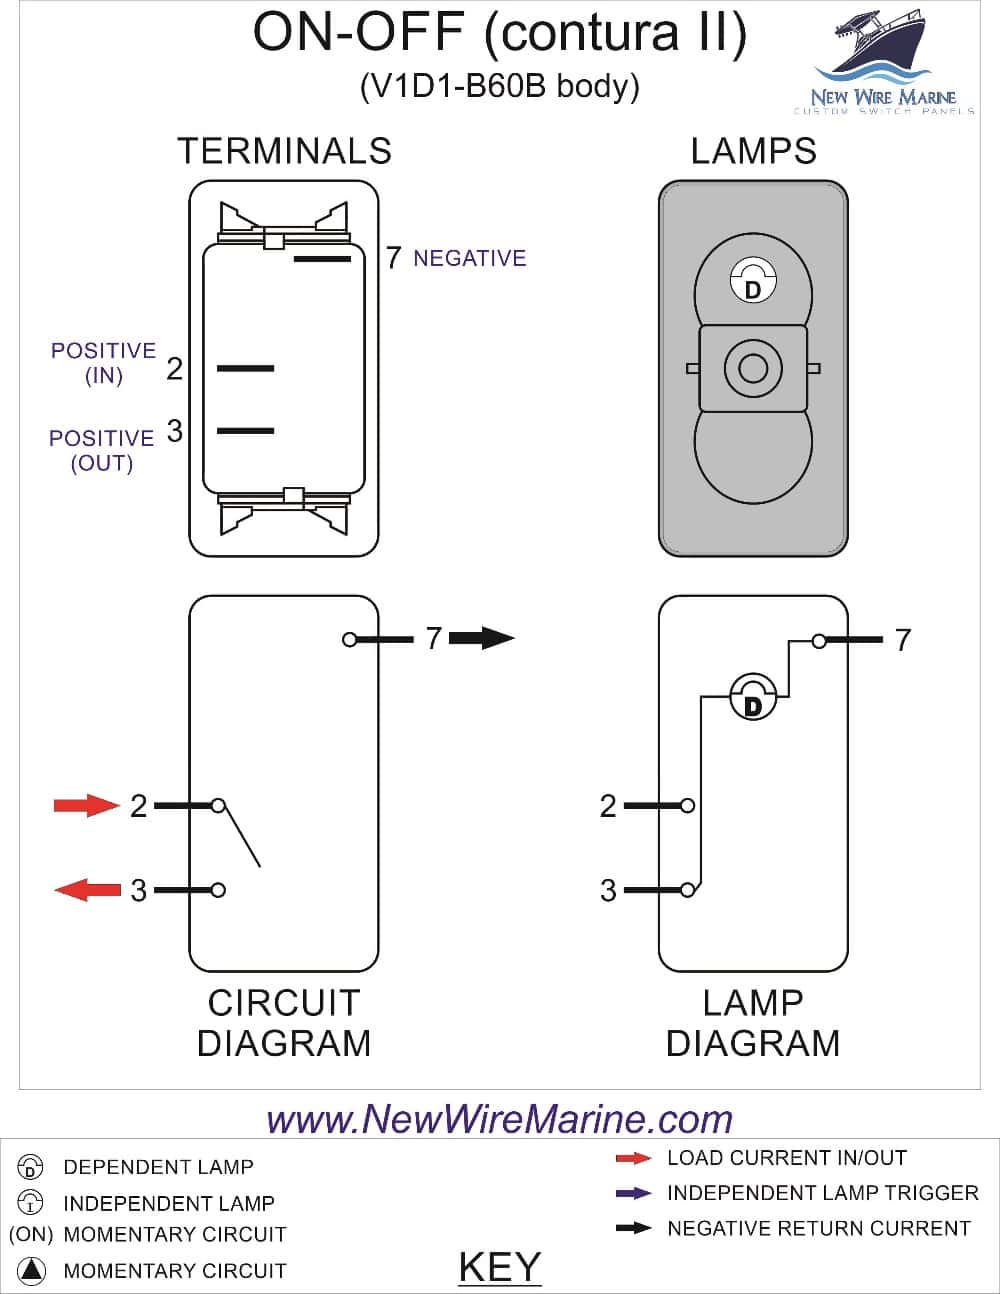 Rocker Switch Wiring Diagrams | New Wire Marine - Lamp Wiring Diagram